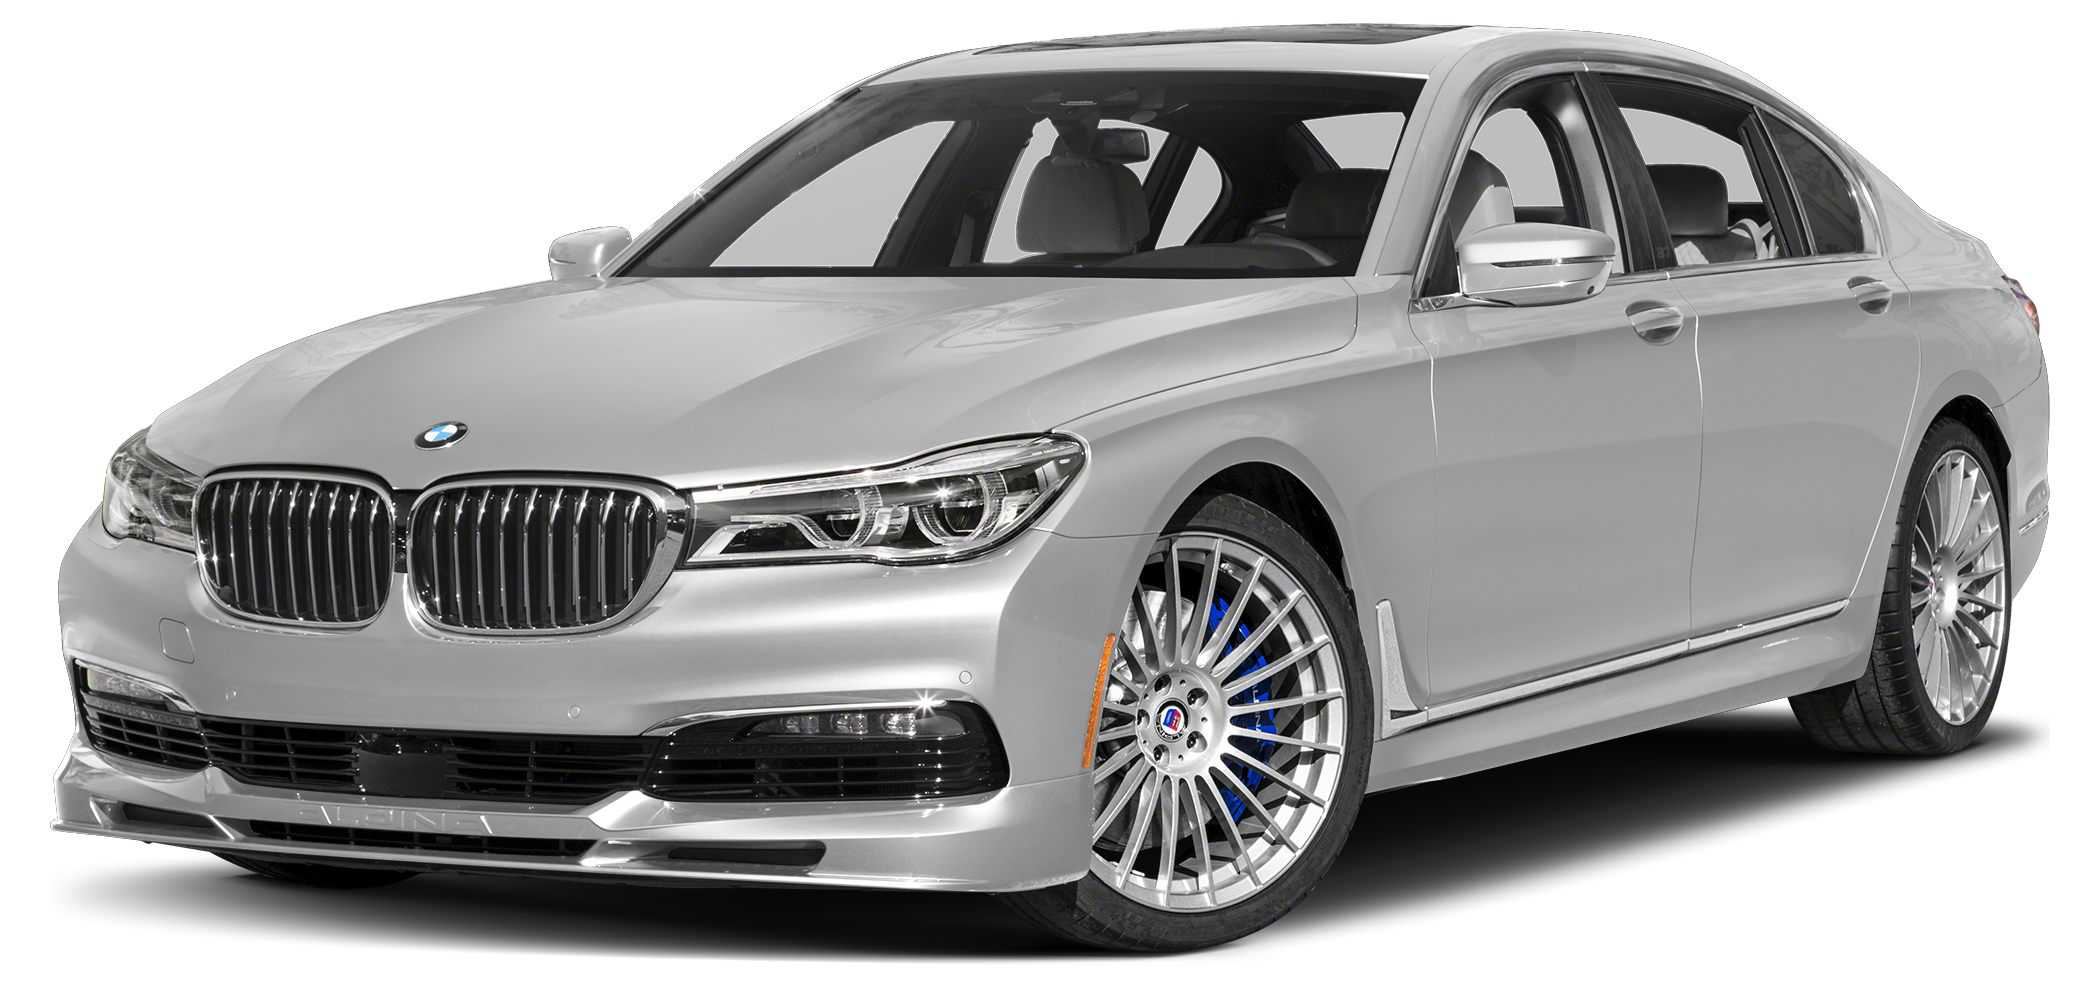 2017 bmw alpina b7 for sale in tampa fl wba7f2c32hg543834. Black Bedroom Furniture Sets. Home Design Ideas